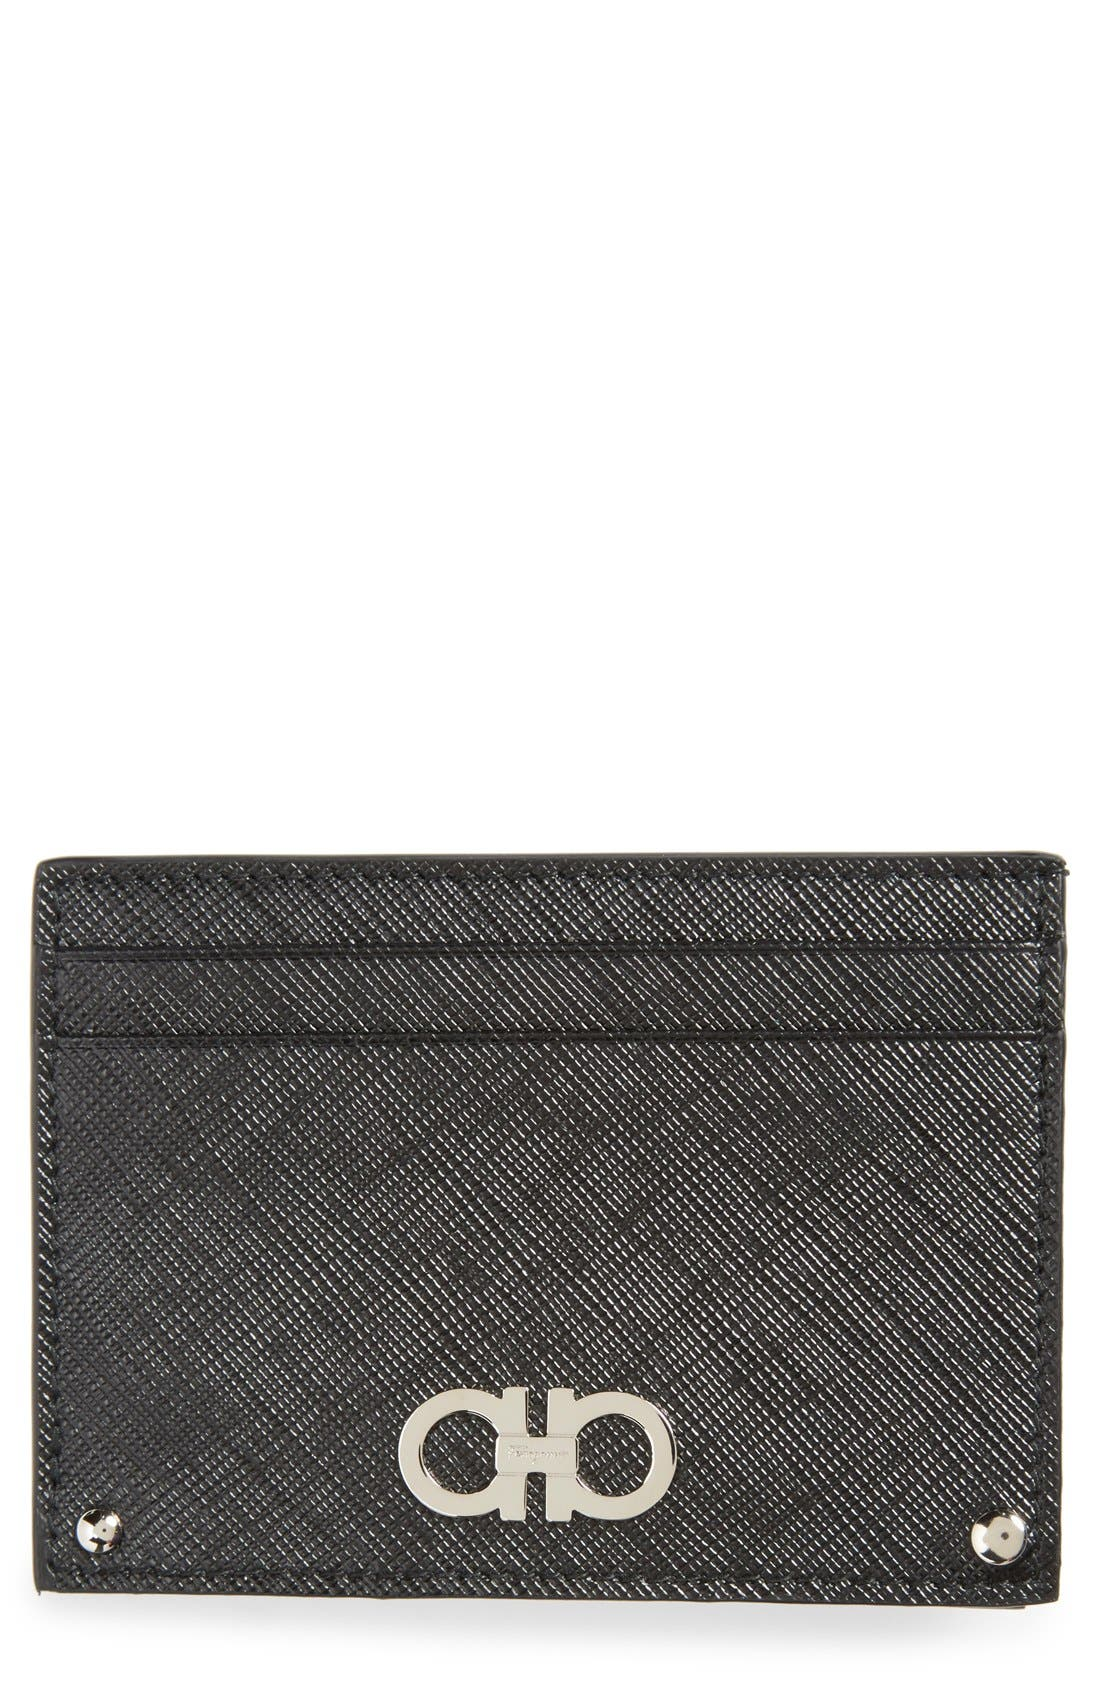 Alternate Image 1 Selected - Salvatore Ferragamo Saffiano Leather Card Case